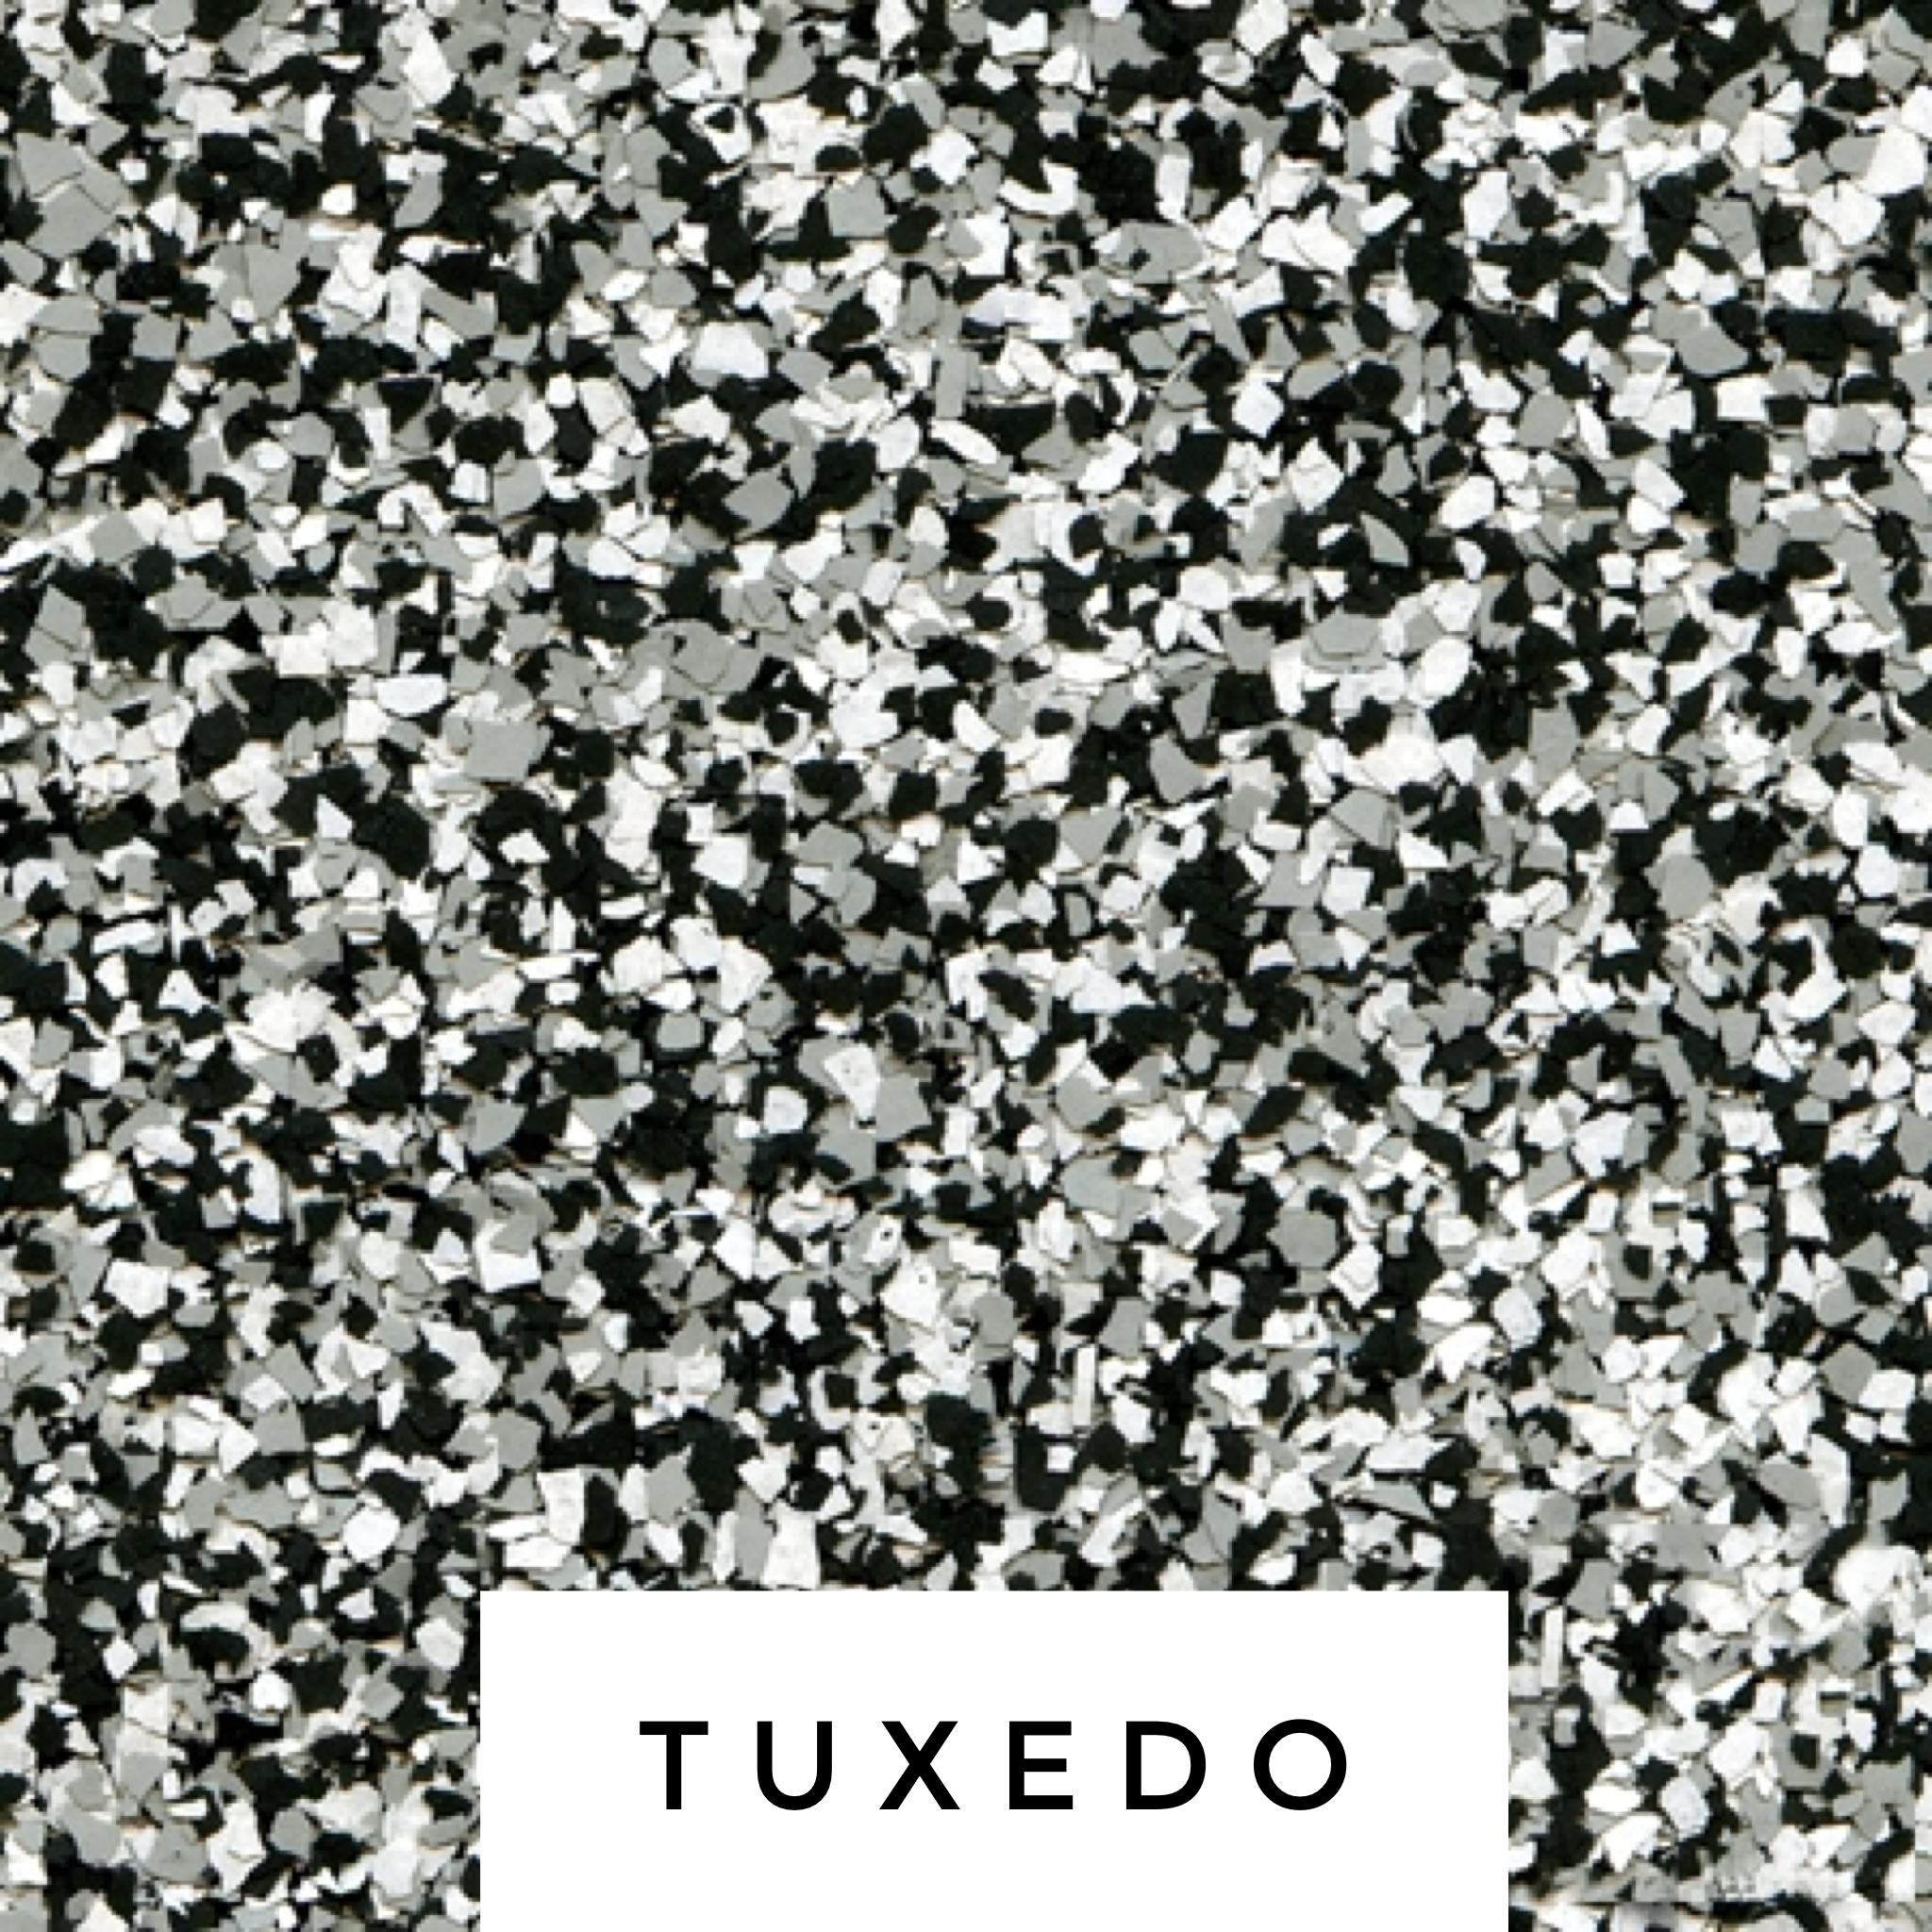 Tuxedo Flake Blend - The perfect combination of white, grey and black.- white, light and medium gray, black